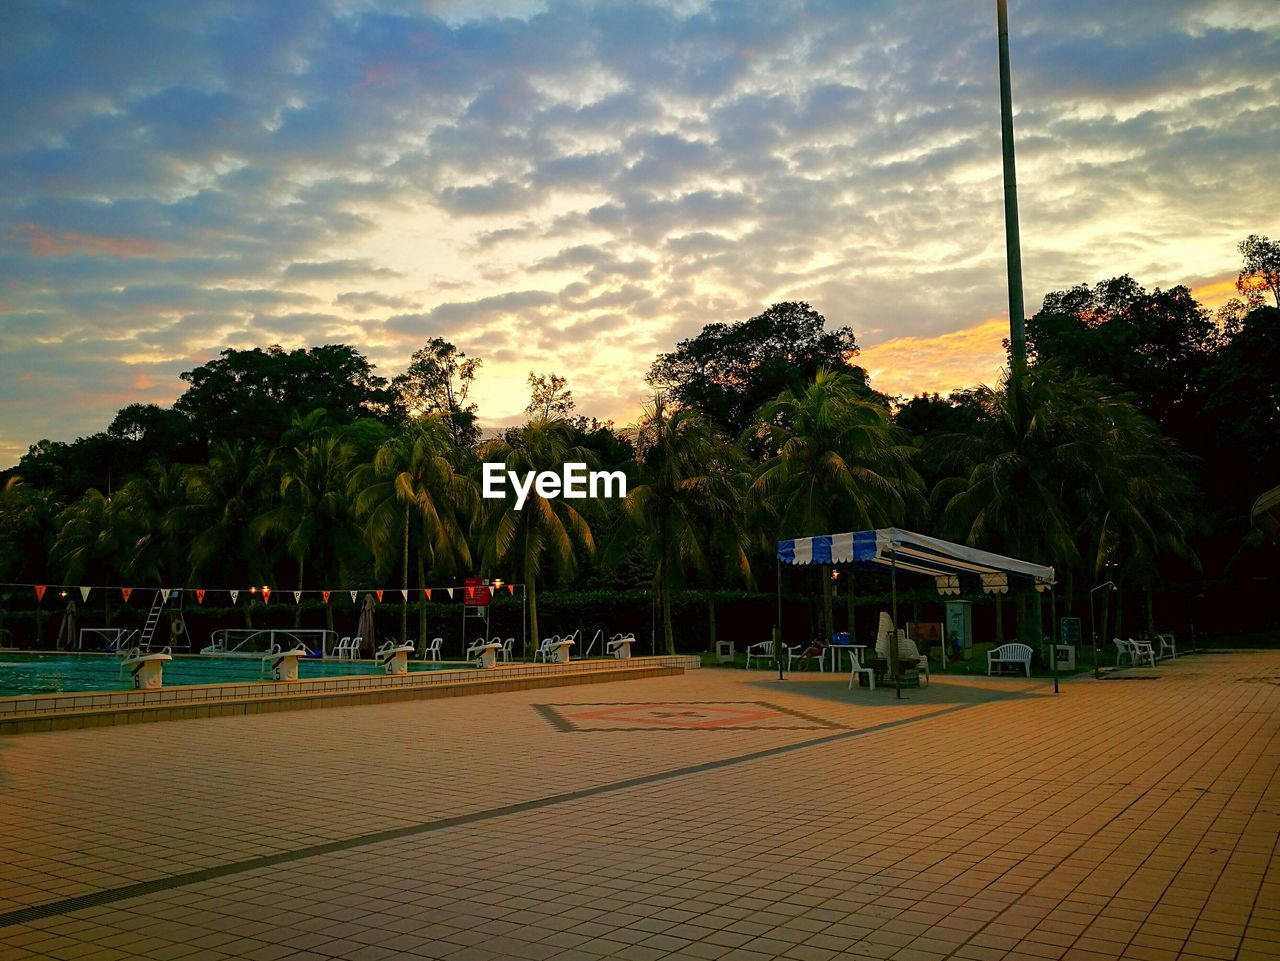 Swimming pool by trees against sky during sunset